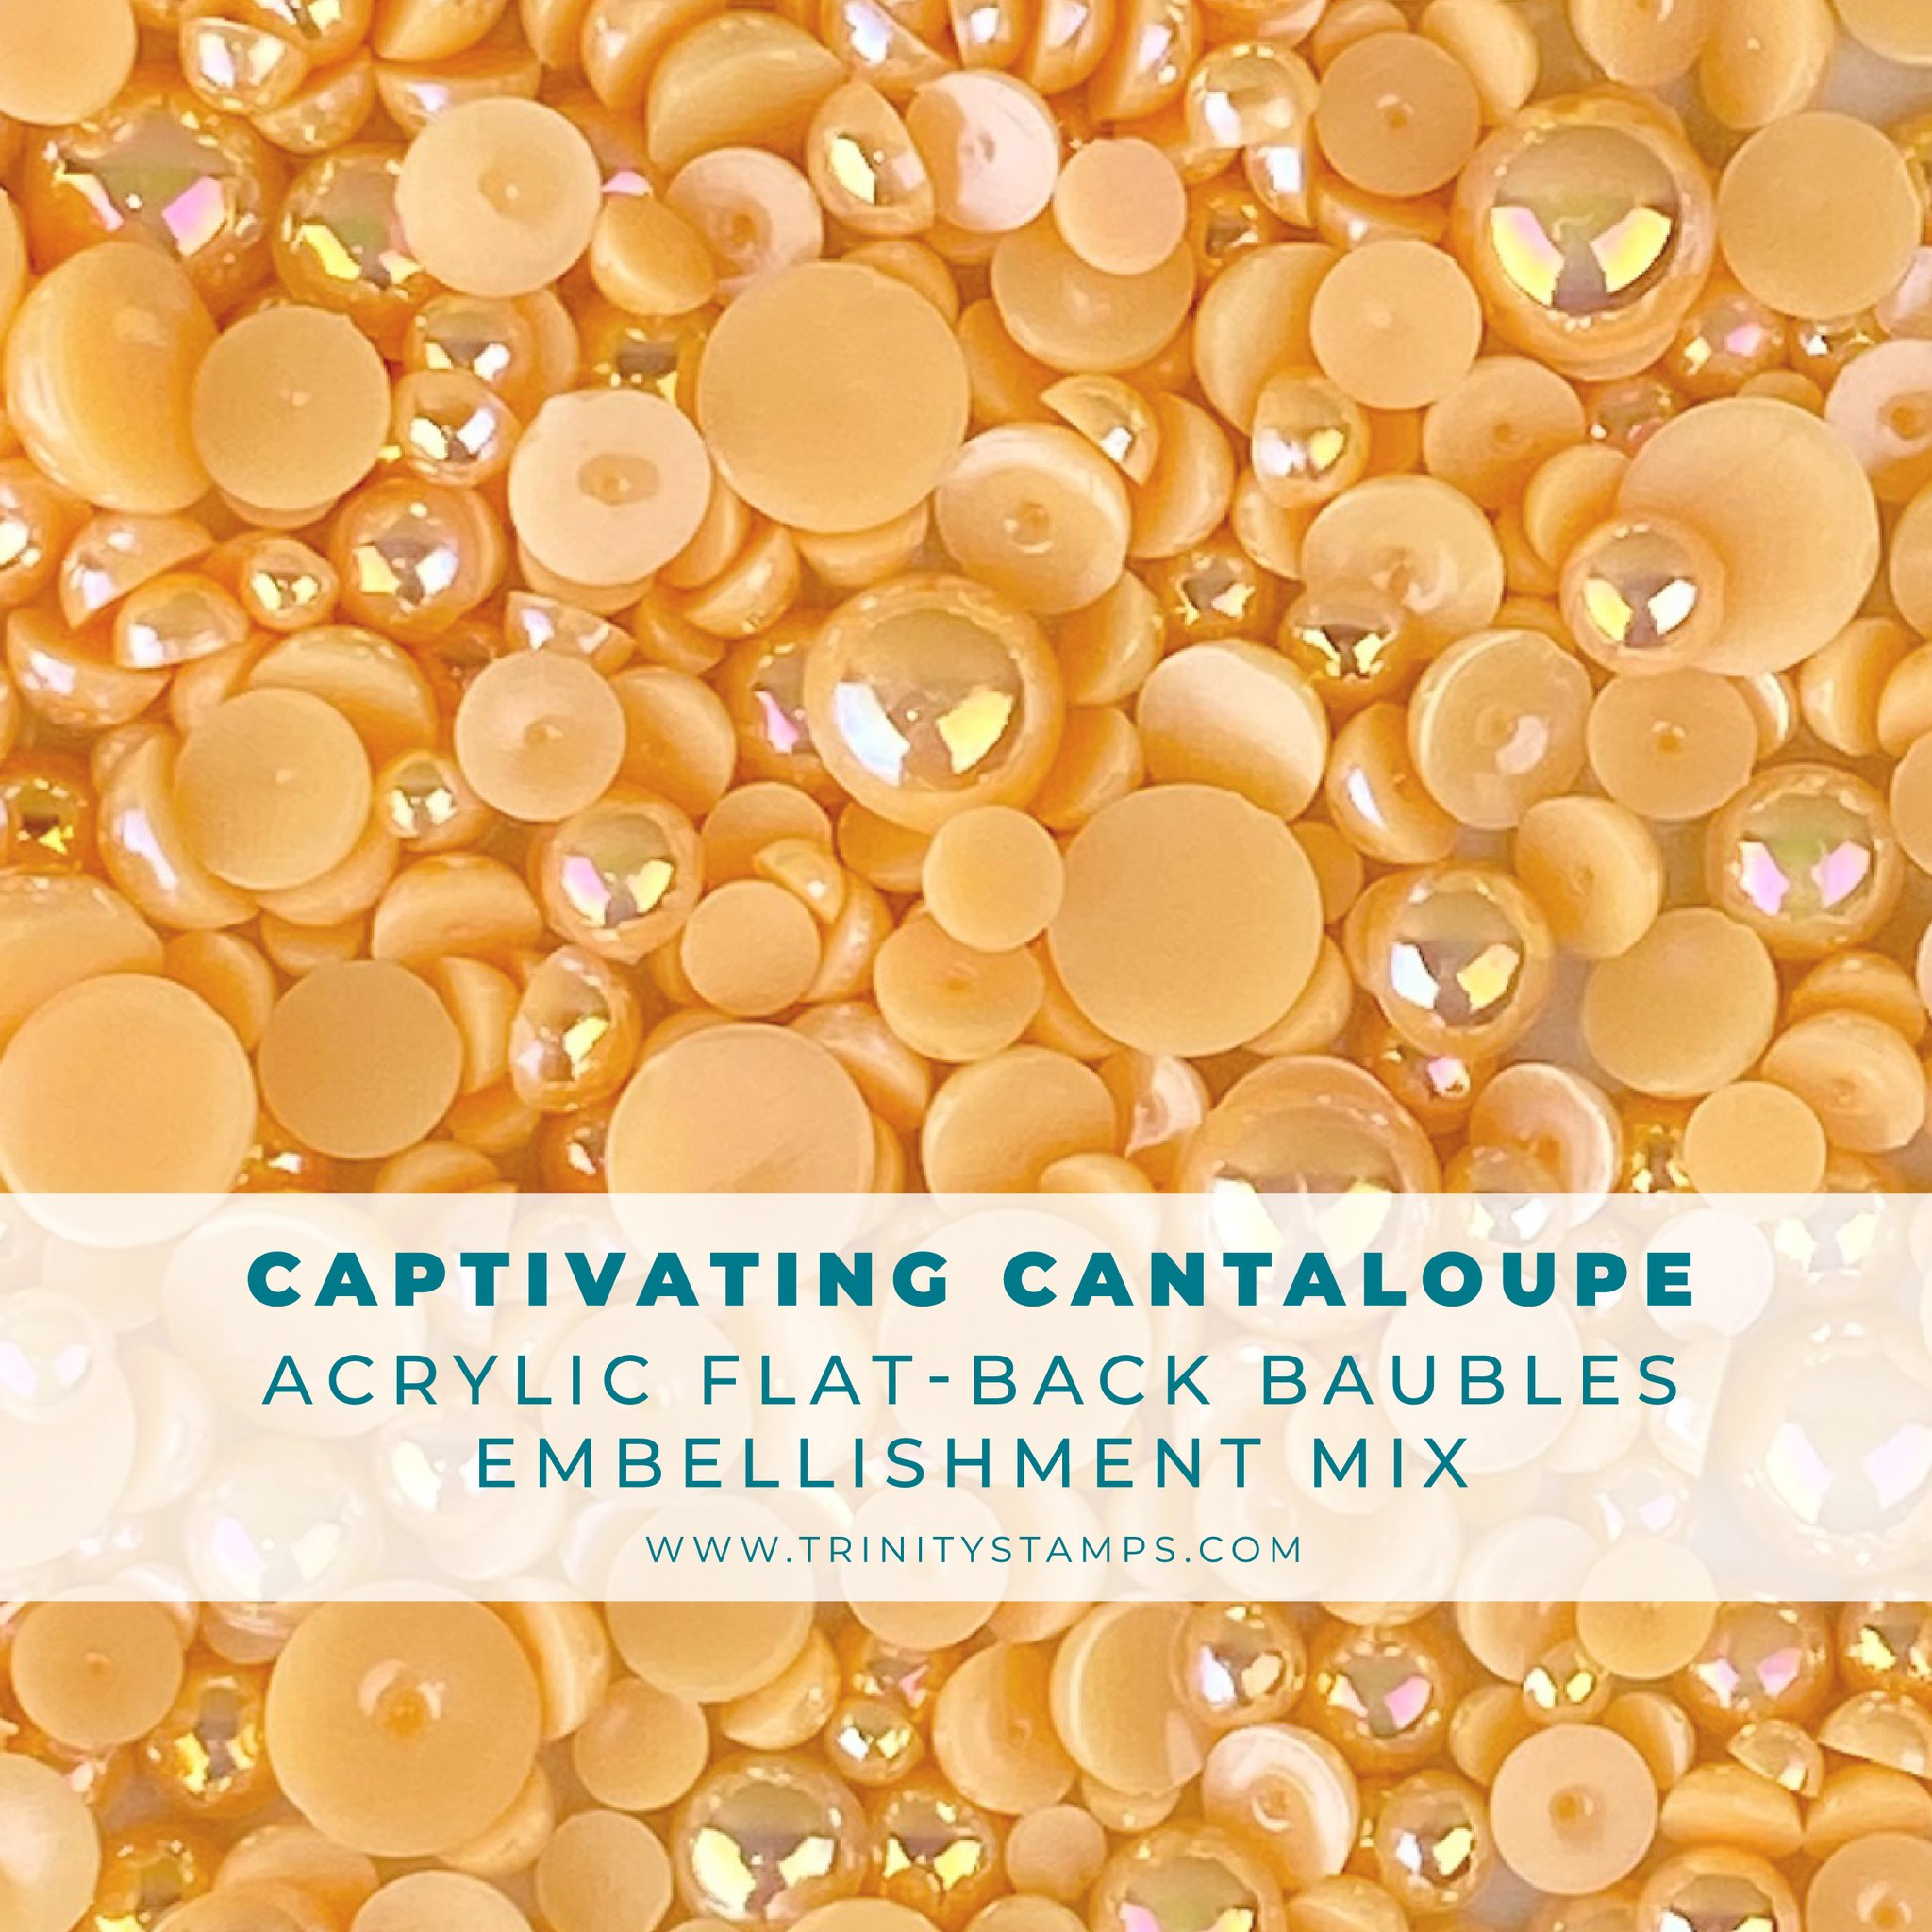 *NEW* - Trinity Stamps - Captivating Cantaloupe Baubles Embellishment Mix